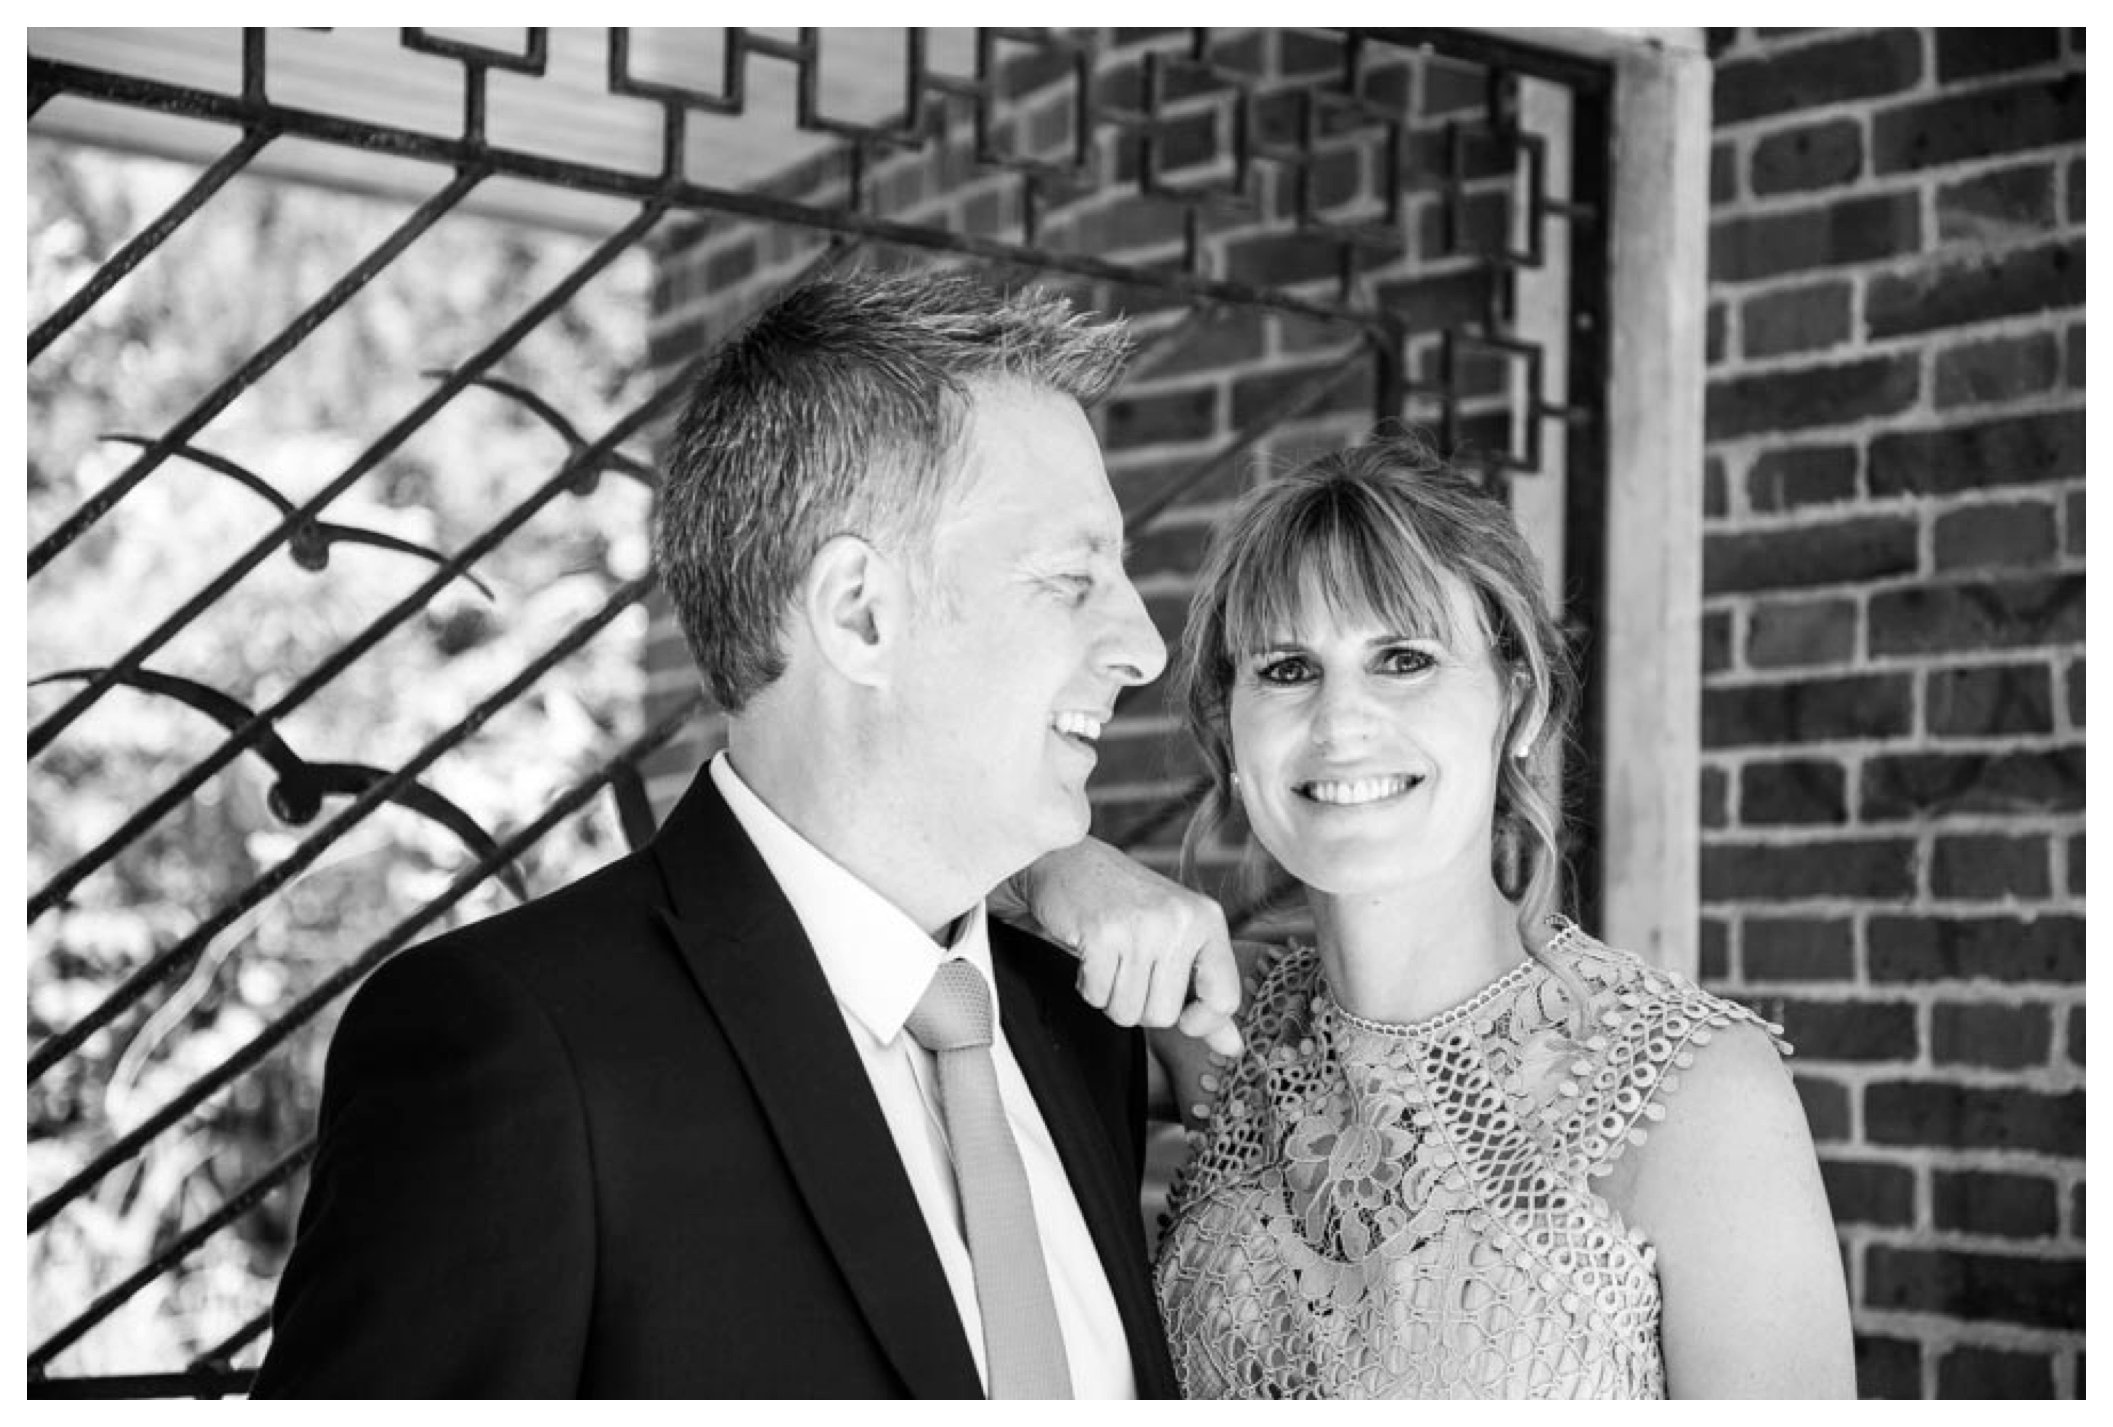 black and white, relaxed bride and groom low key couples portrait